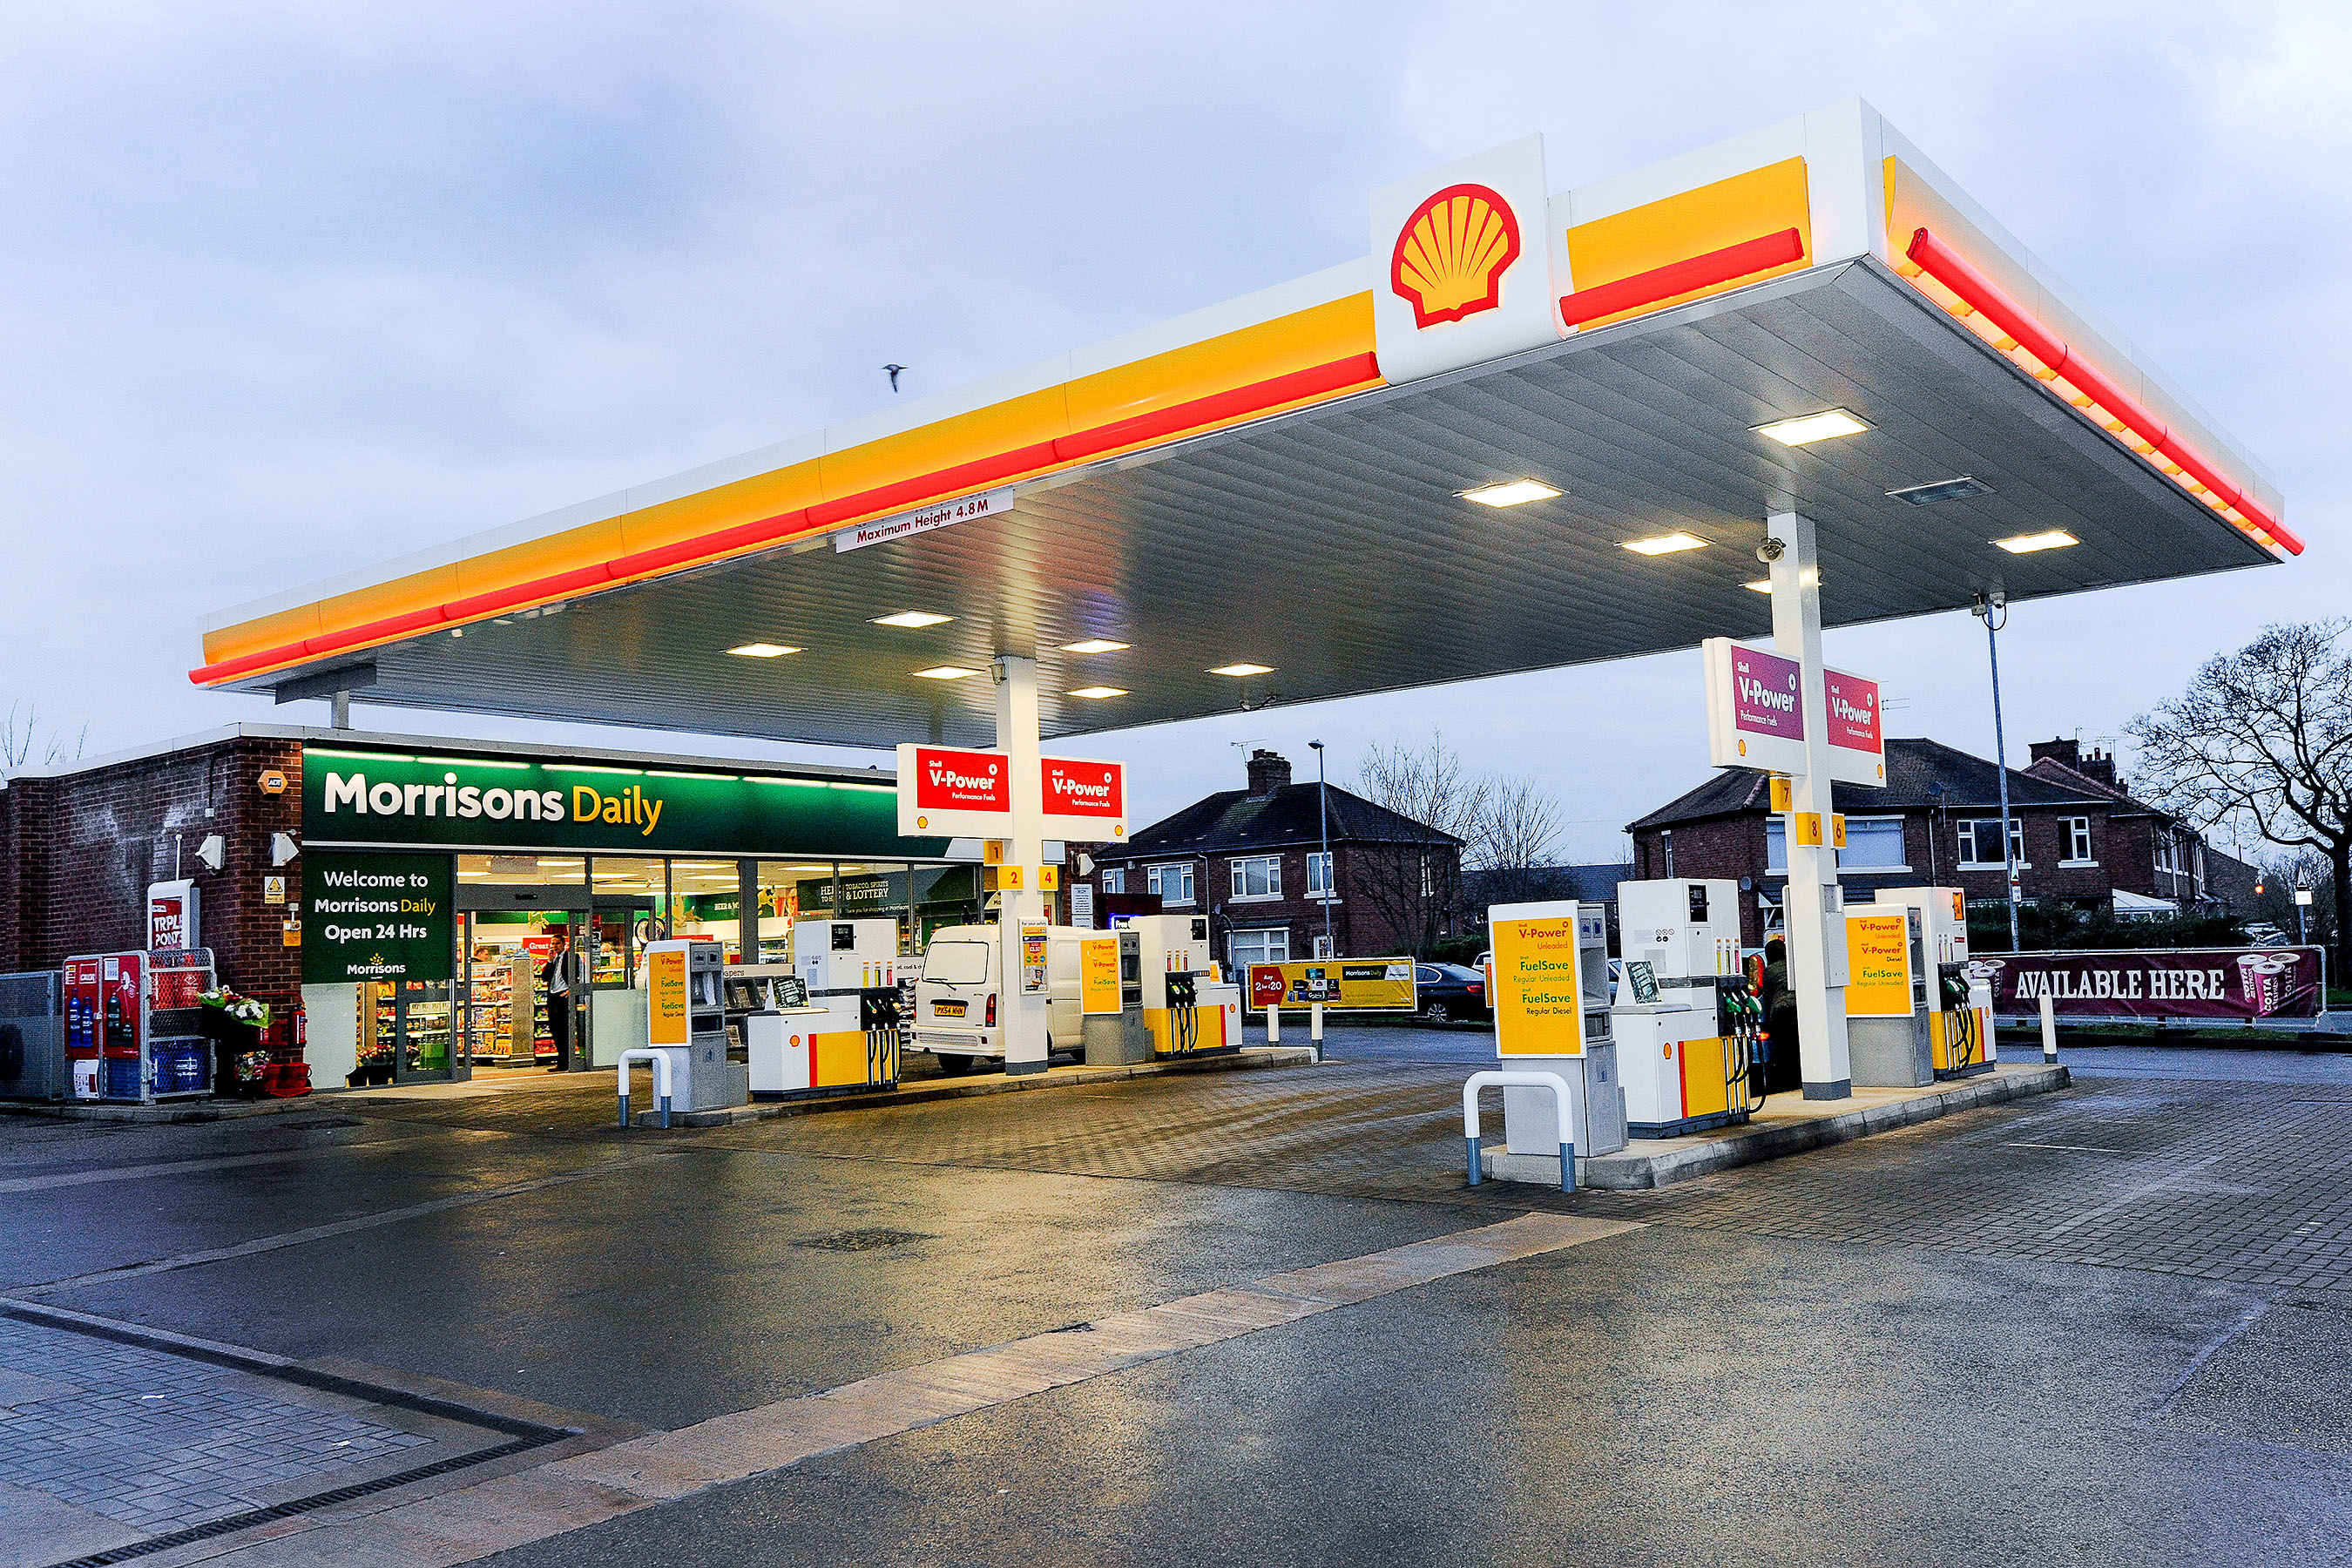 Morrisons trials new convenience concept morrisons daily for Daily design news